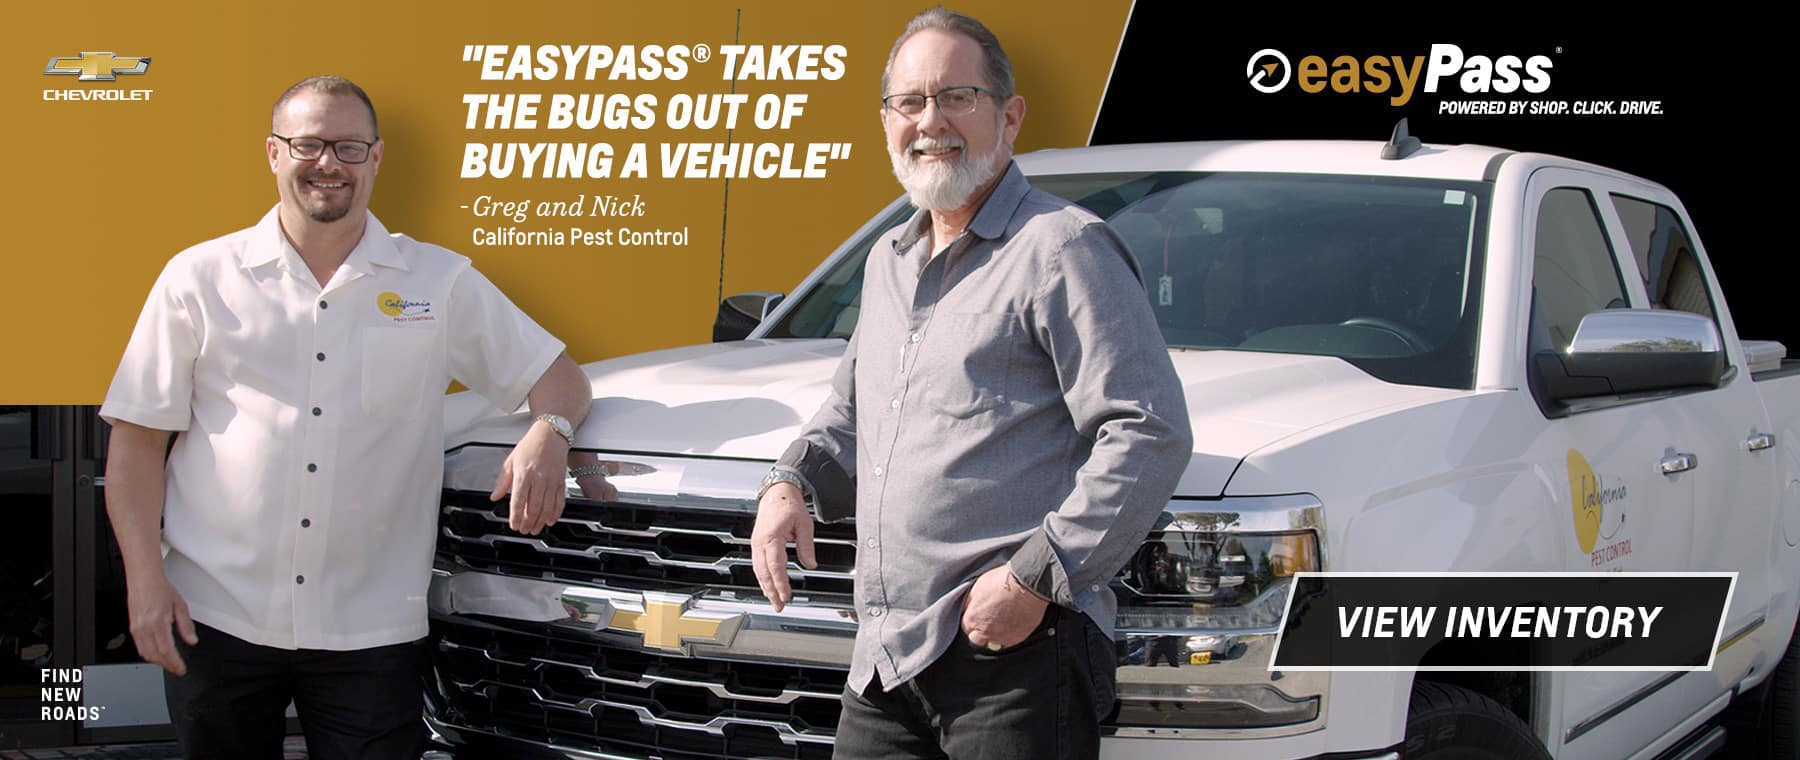 EasyPass Takes The Bugs Out Of Buying A Vehicle - View Inventory